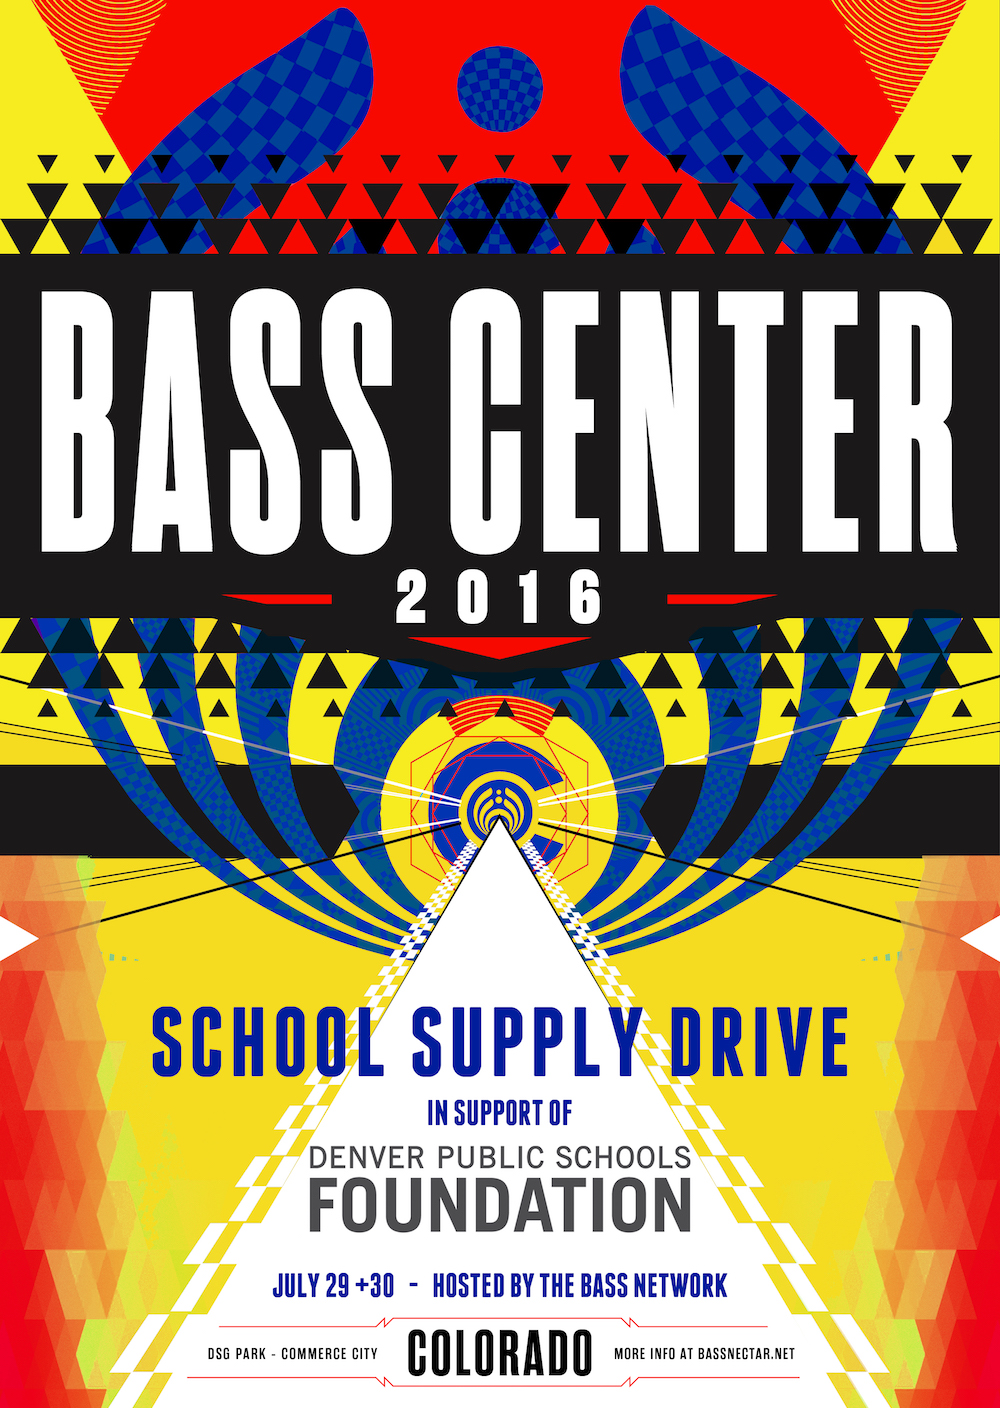 Bass Network - Bass Center Donation Drives